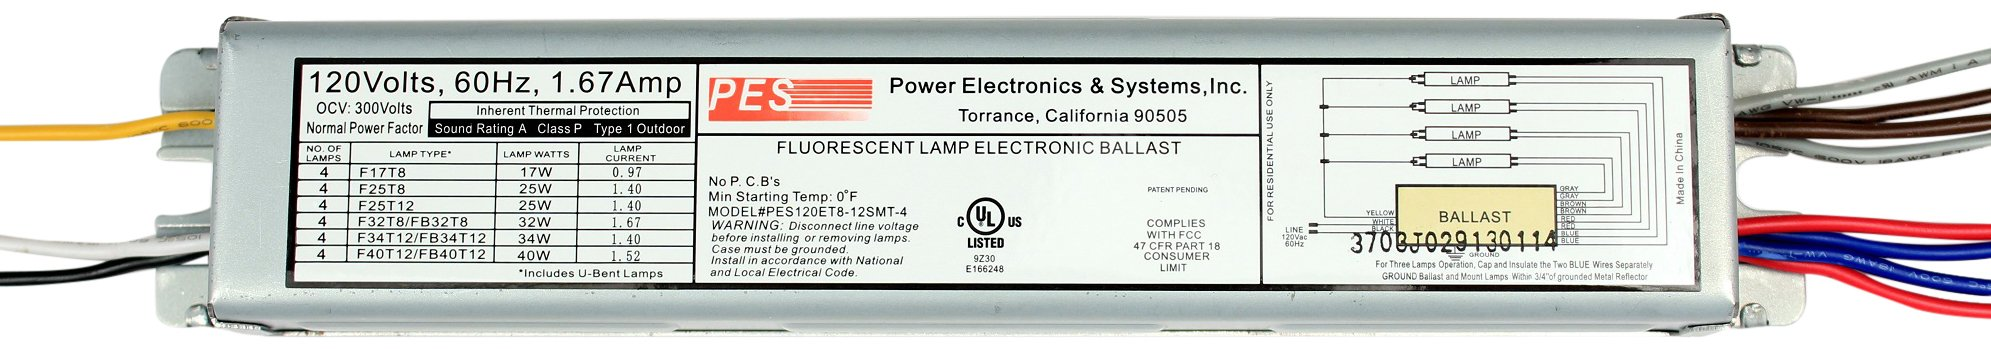 Power Electronics & Systems PES120ET8-12SMT-4 2 Lamp 120V Instant Start Fluorescent Dimming Electronic Ballast for 2- F17T8, F25T8 and F32T8 T8 Bulbs